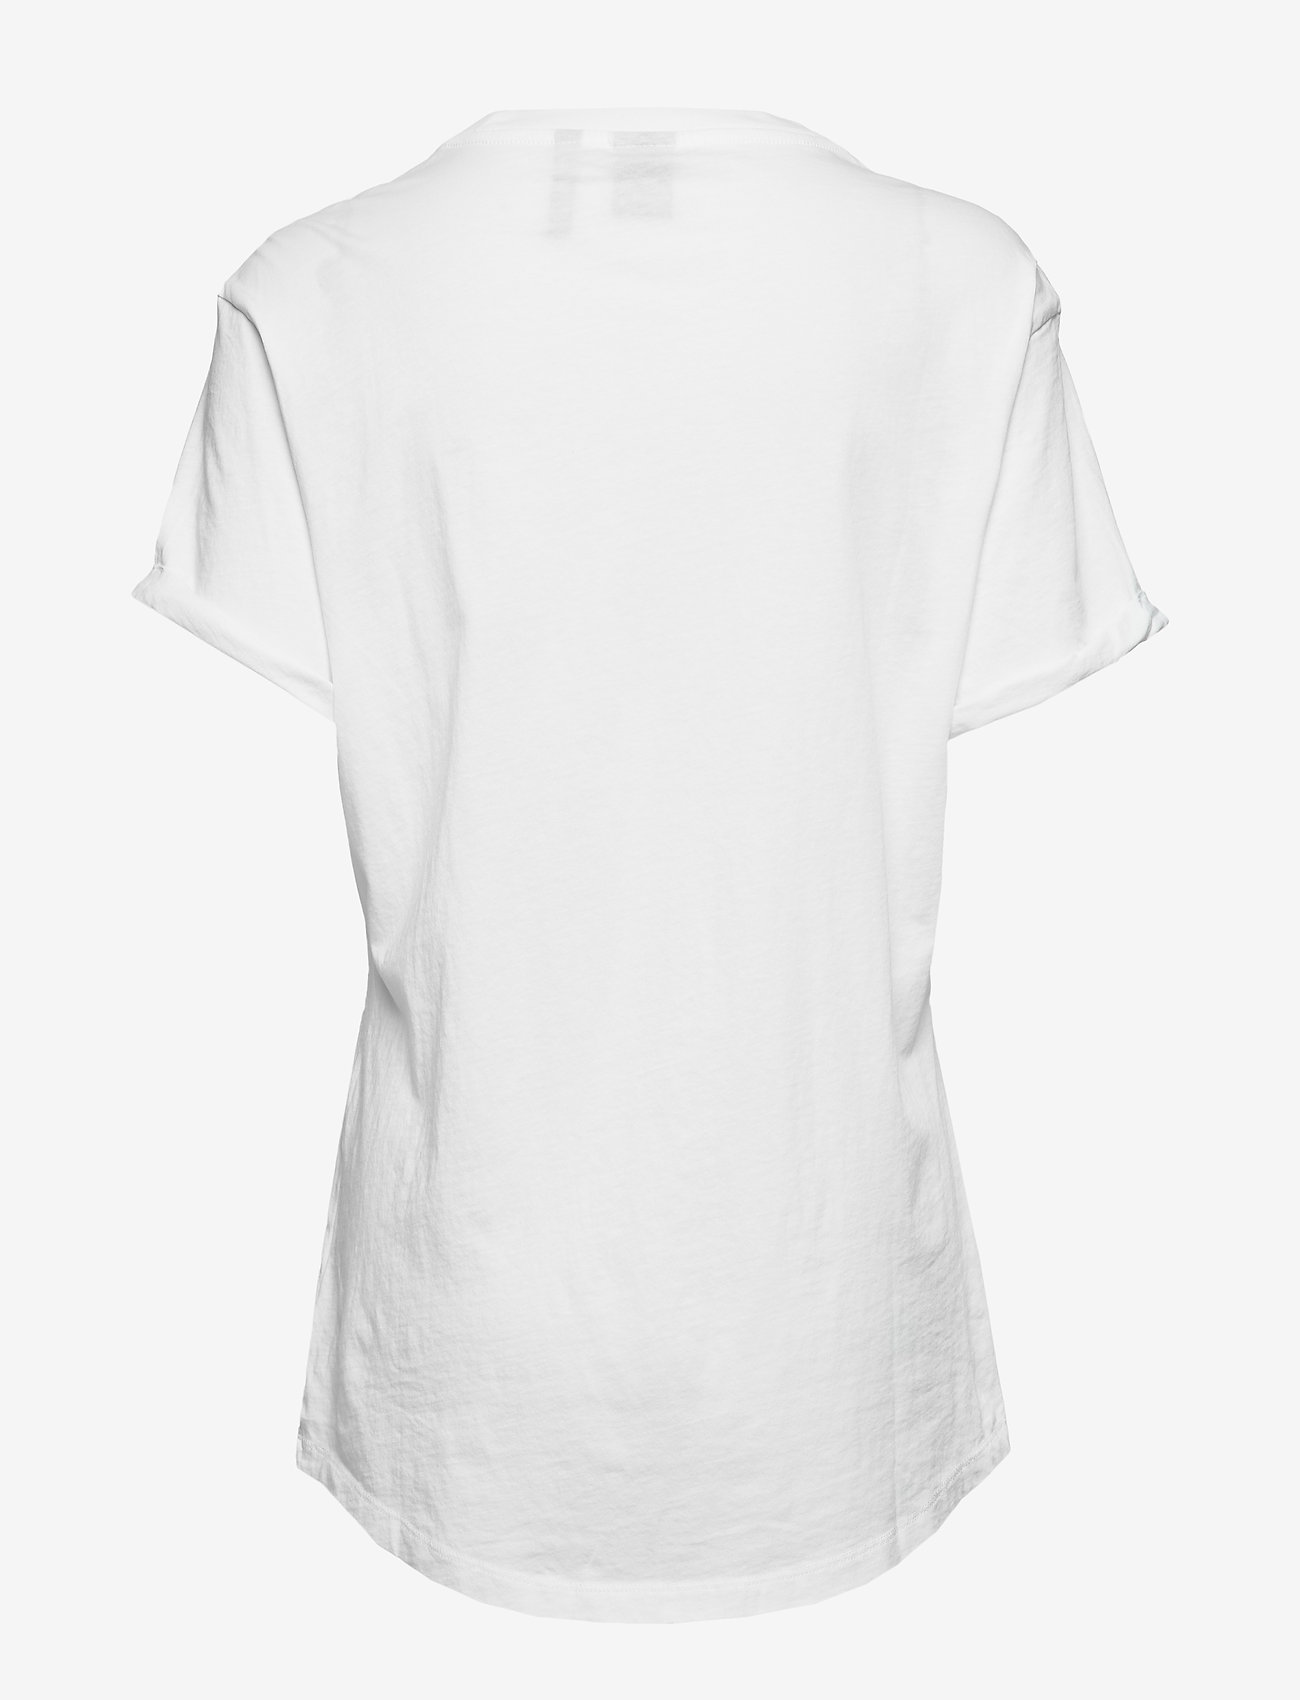 G-star RAW - Lash fem loose r t wmn s\s - t-shirts - white - 1